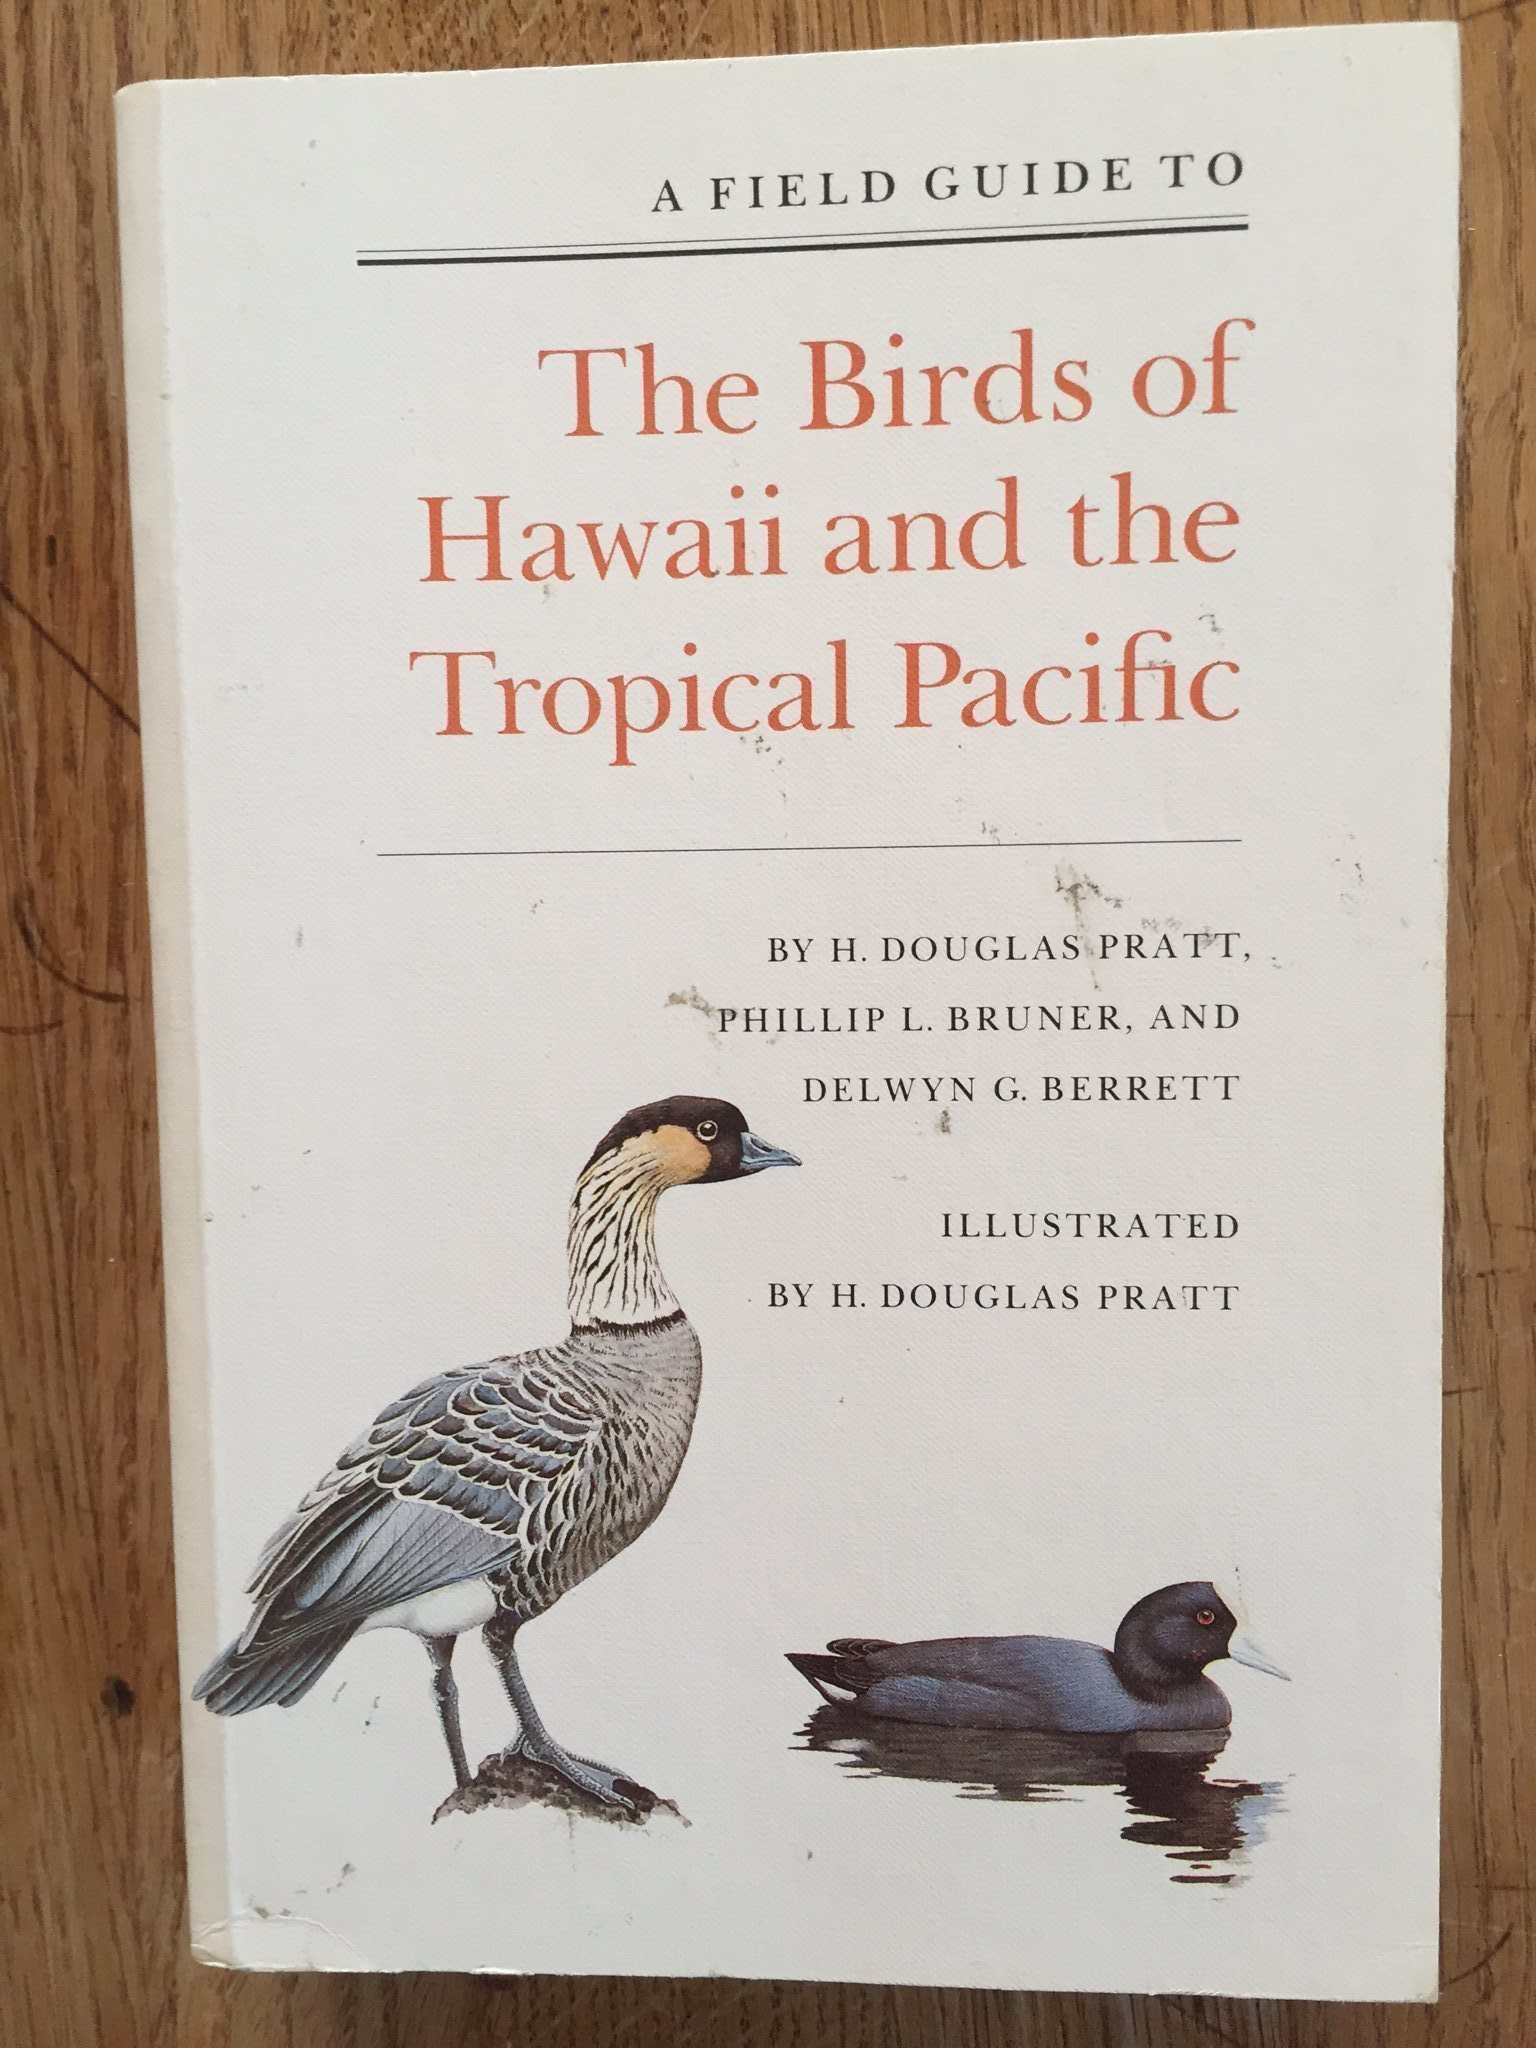 The Birds of Hawaii and the Tropical Pacific